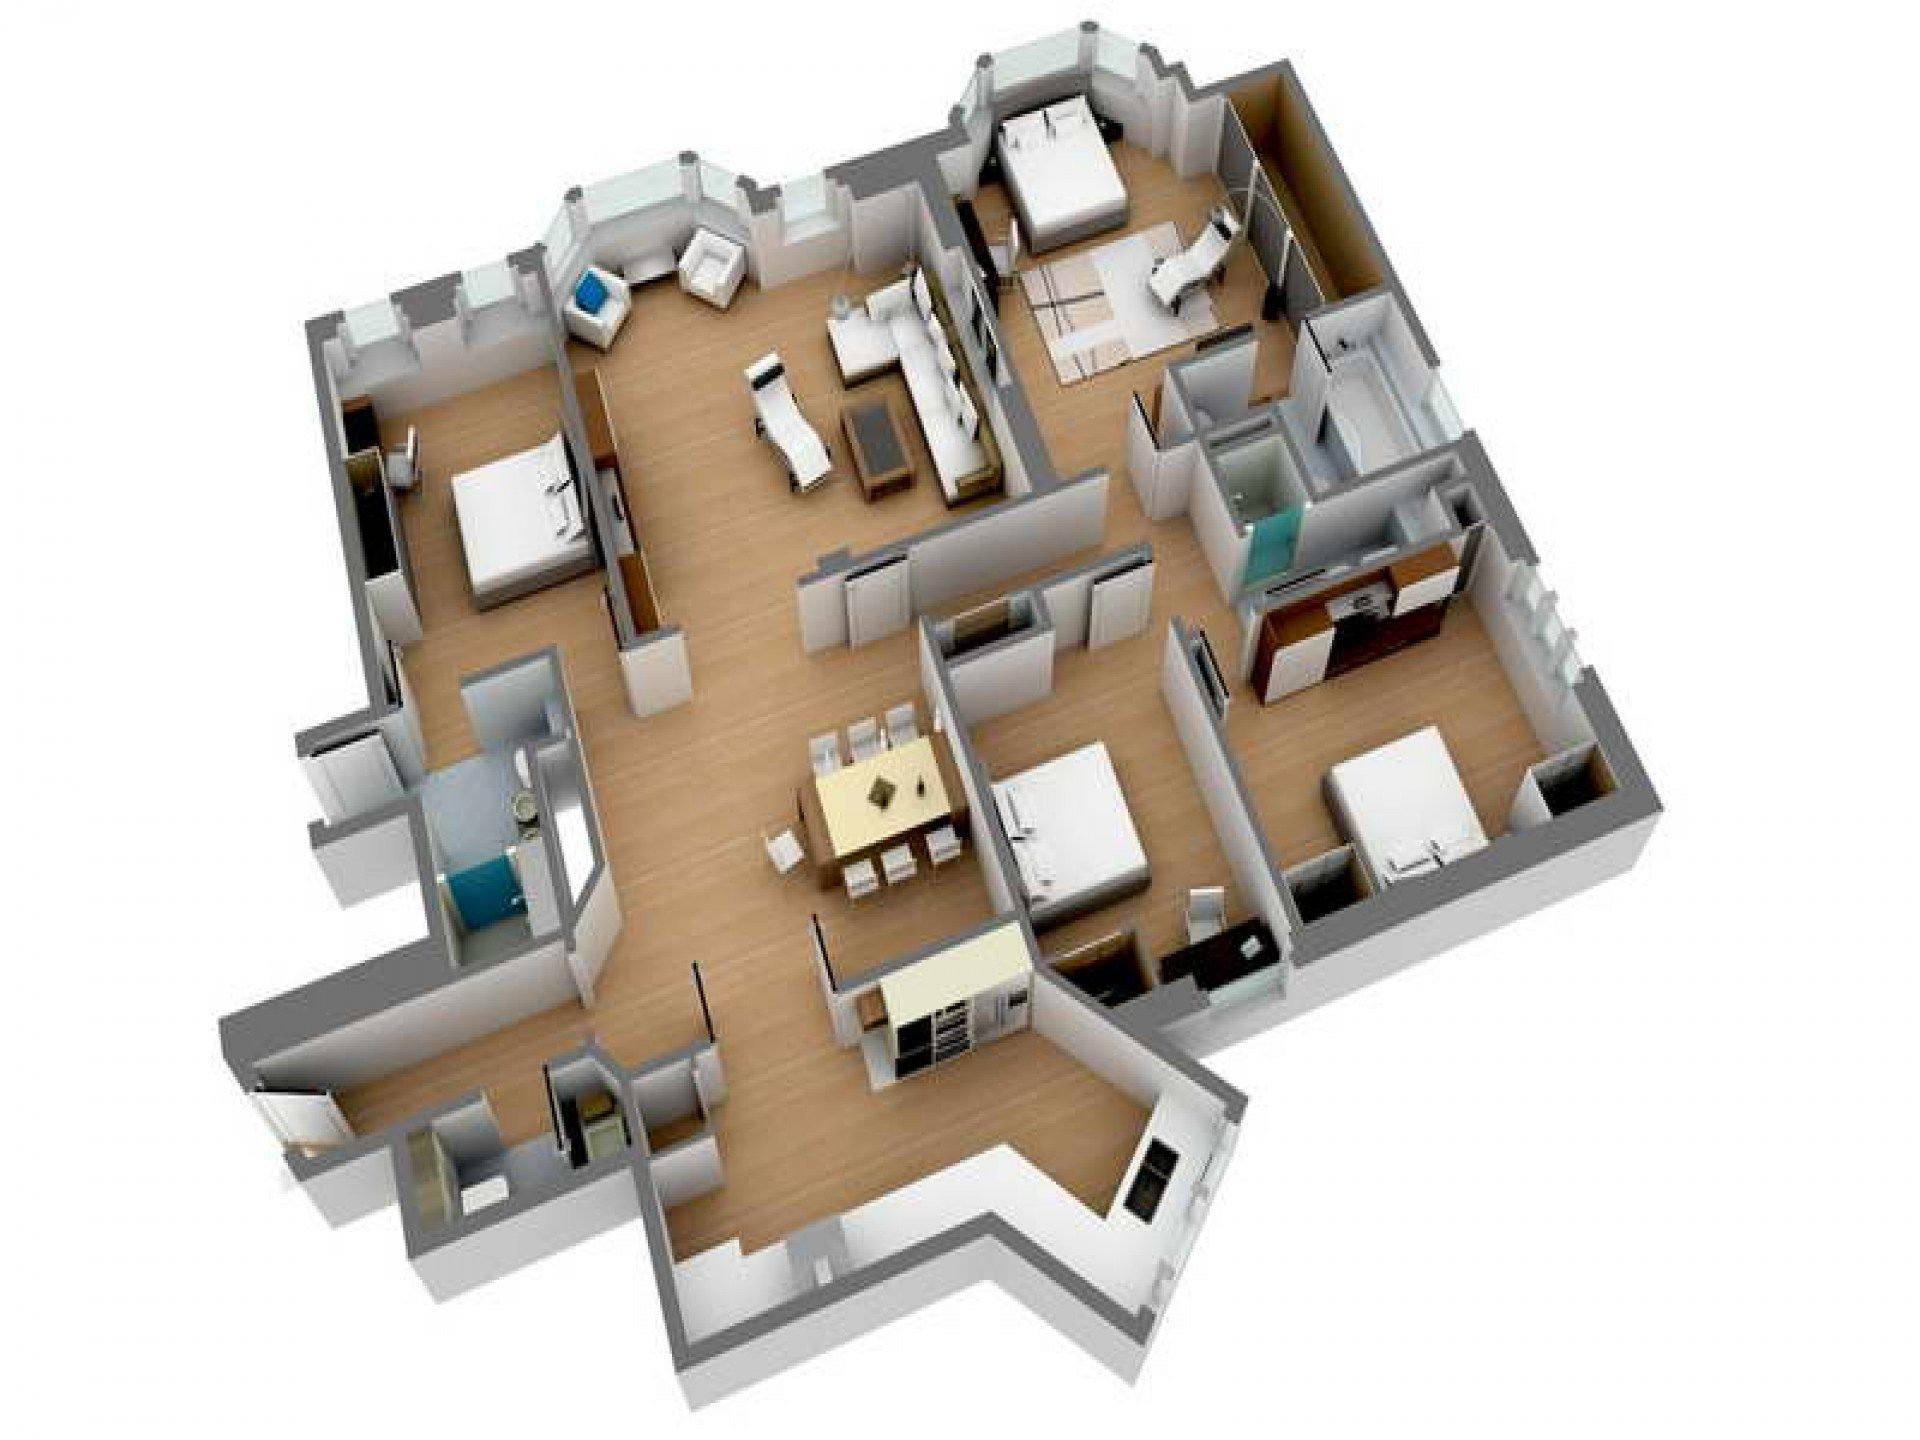 Planner Home Design Software Online Floor Plans Software Design Classics Floor Planner Home Design Software Onl House Design Home Design Software Floor Planner